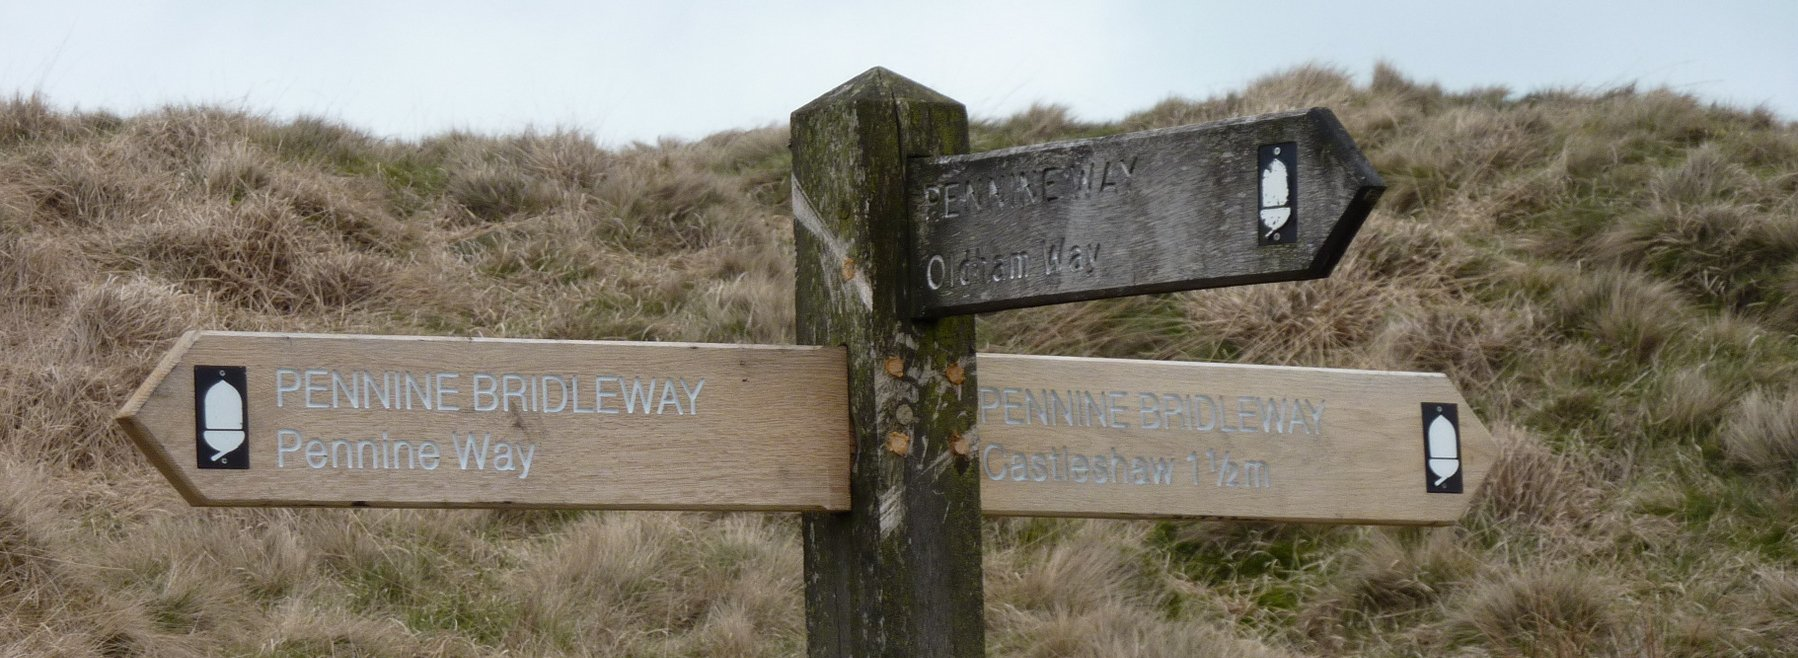 Brand new 'Pennine Bridleway' fingers on this old Pennine Way signpost